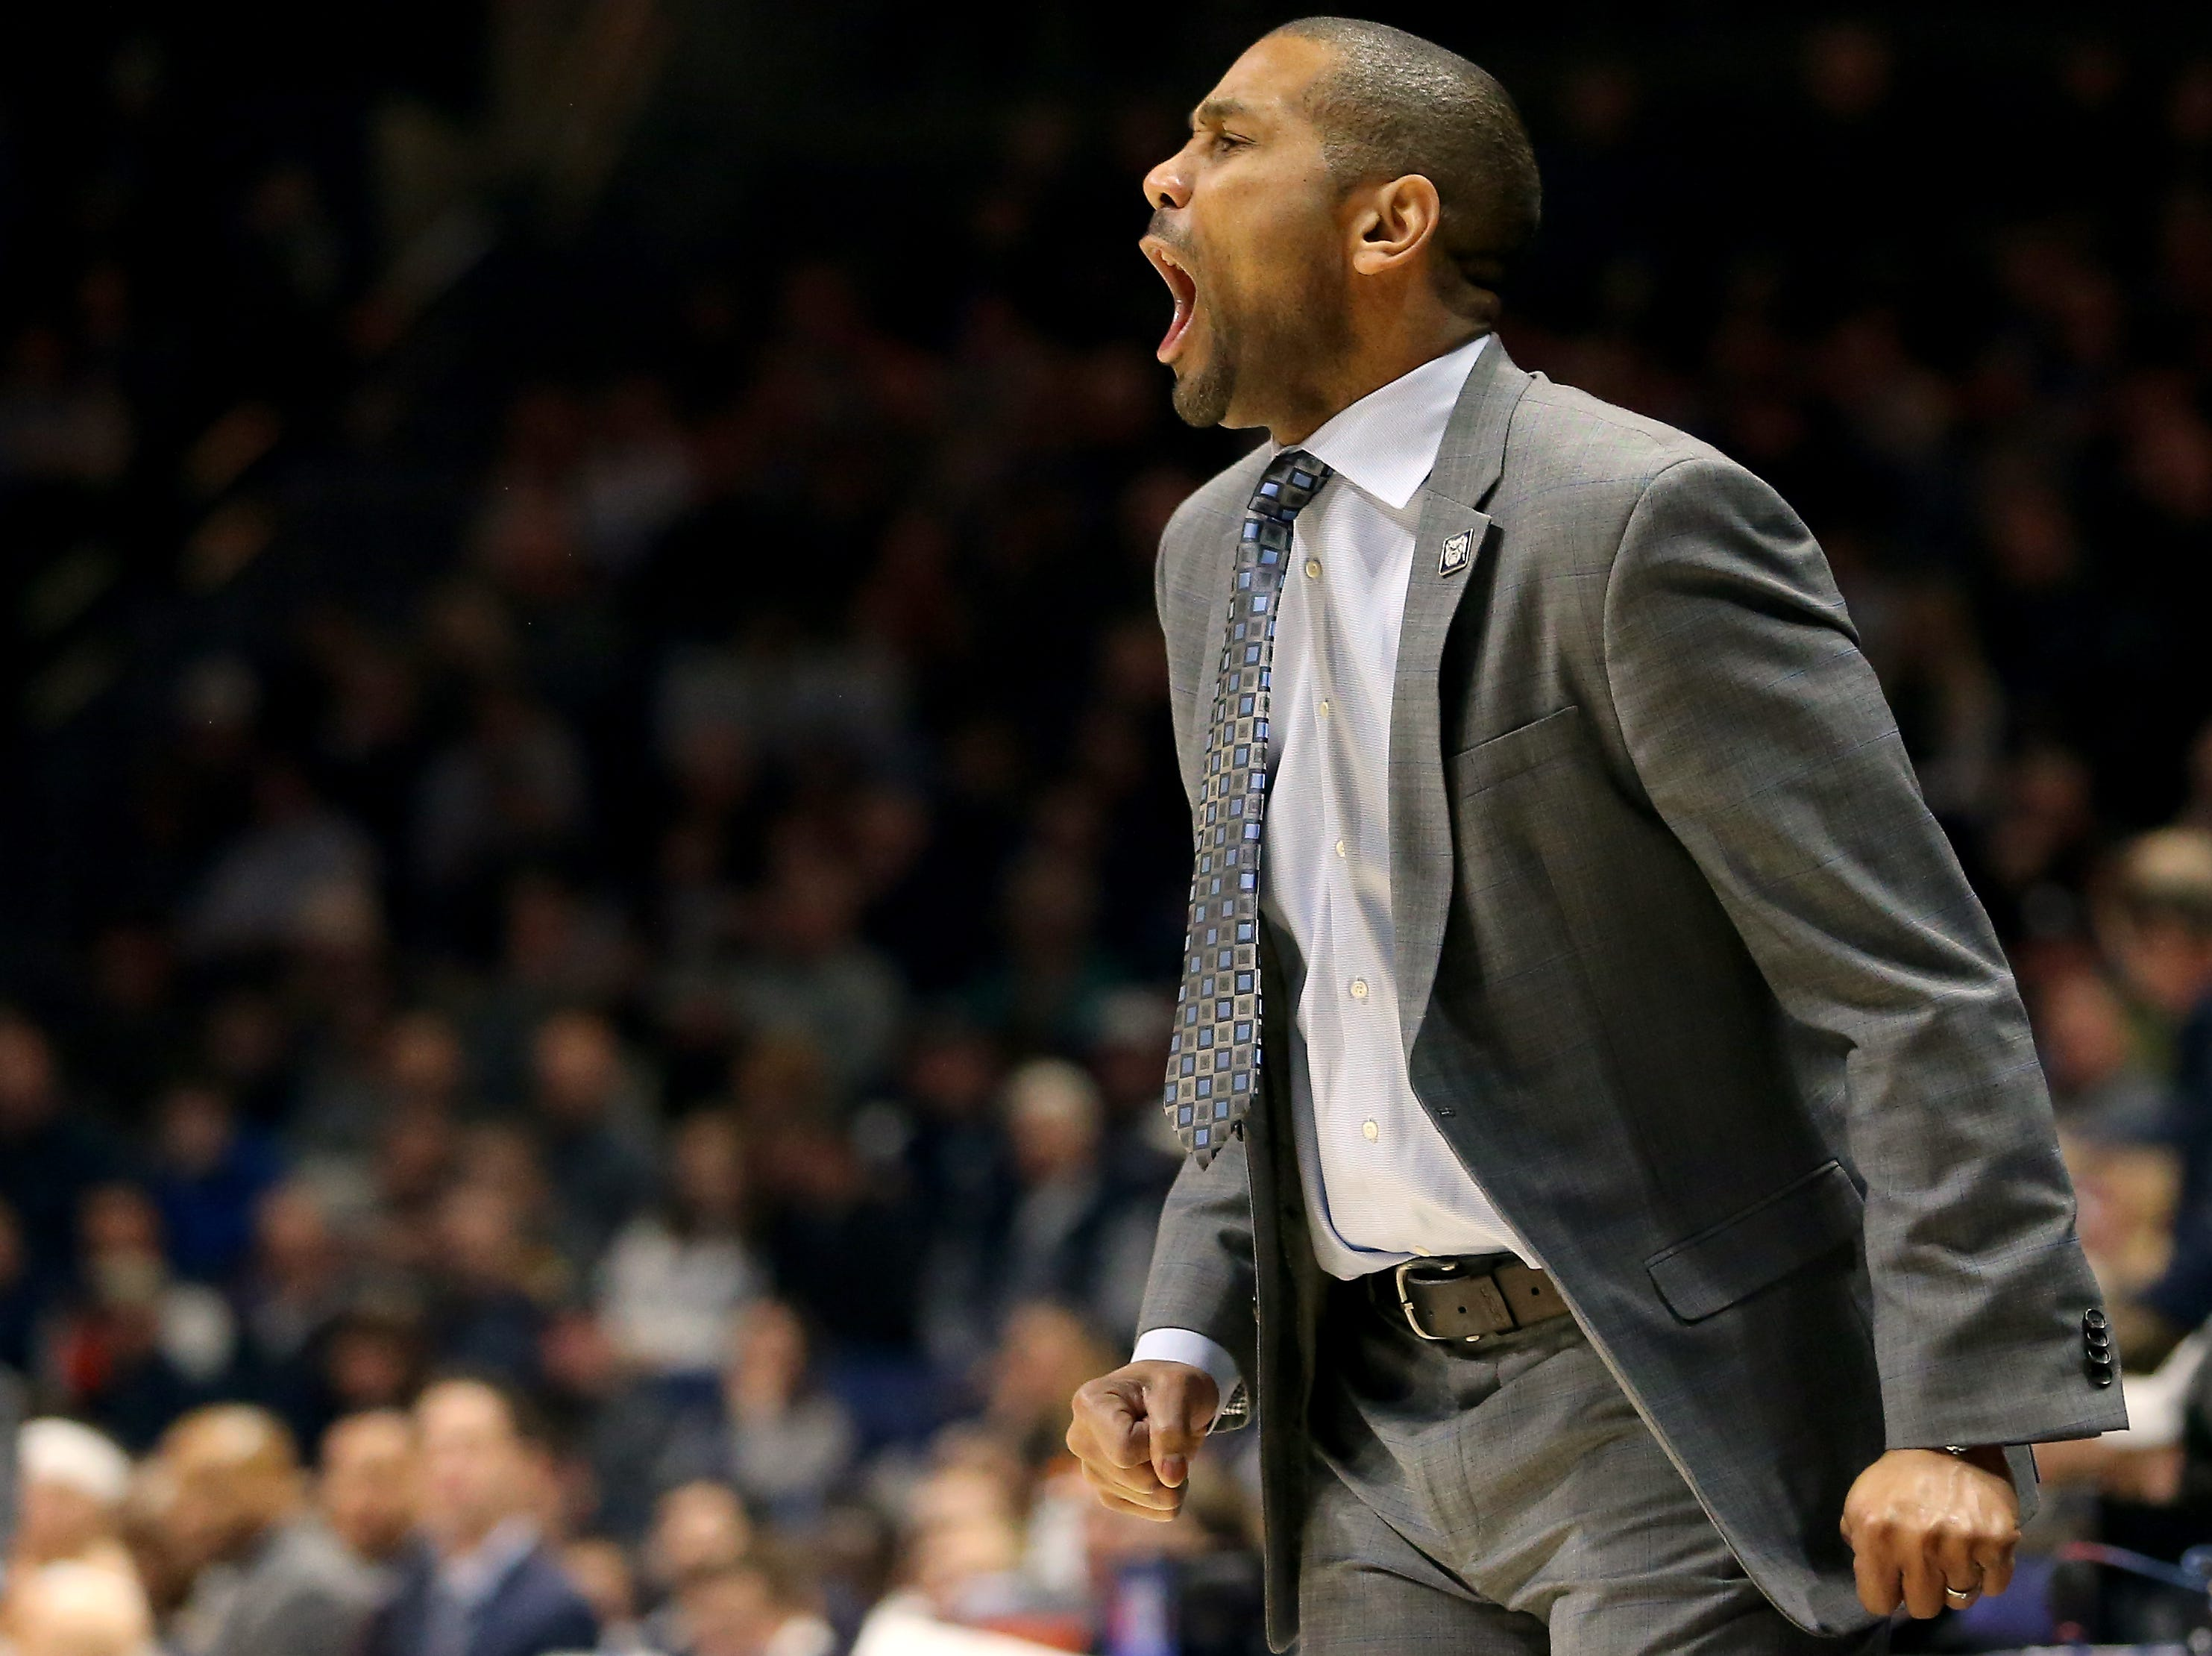 Butler Bulldogs head coach LaVall Jordan instructs the team in the first half of an NCAA college basketball game against the Xavier Musketeers, Sunday, Jan. 13, 2019, at Cintas Center in Cincinnati.